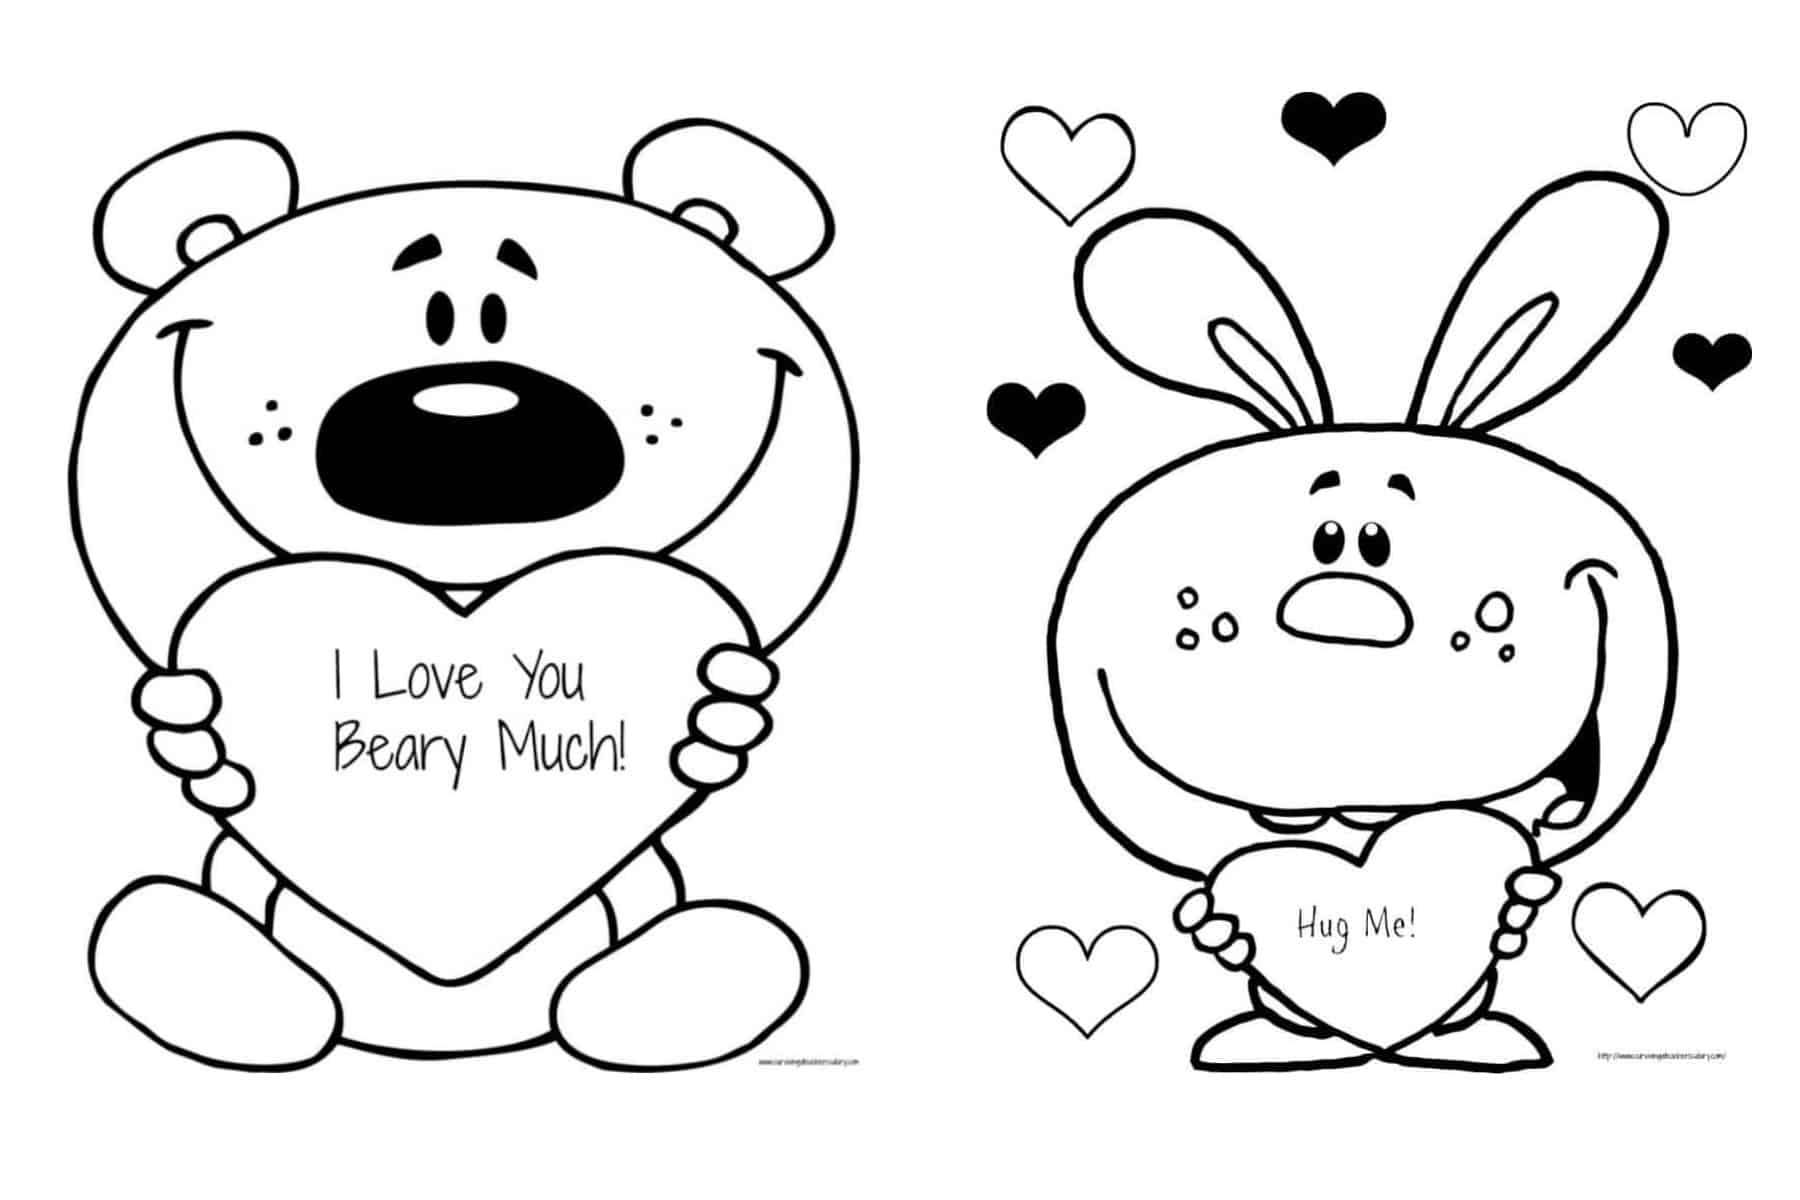 love you coloring pages i love you boyfriend coloring pages coloring home love coloring pages you